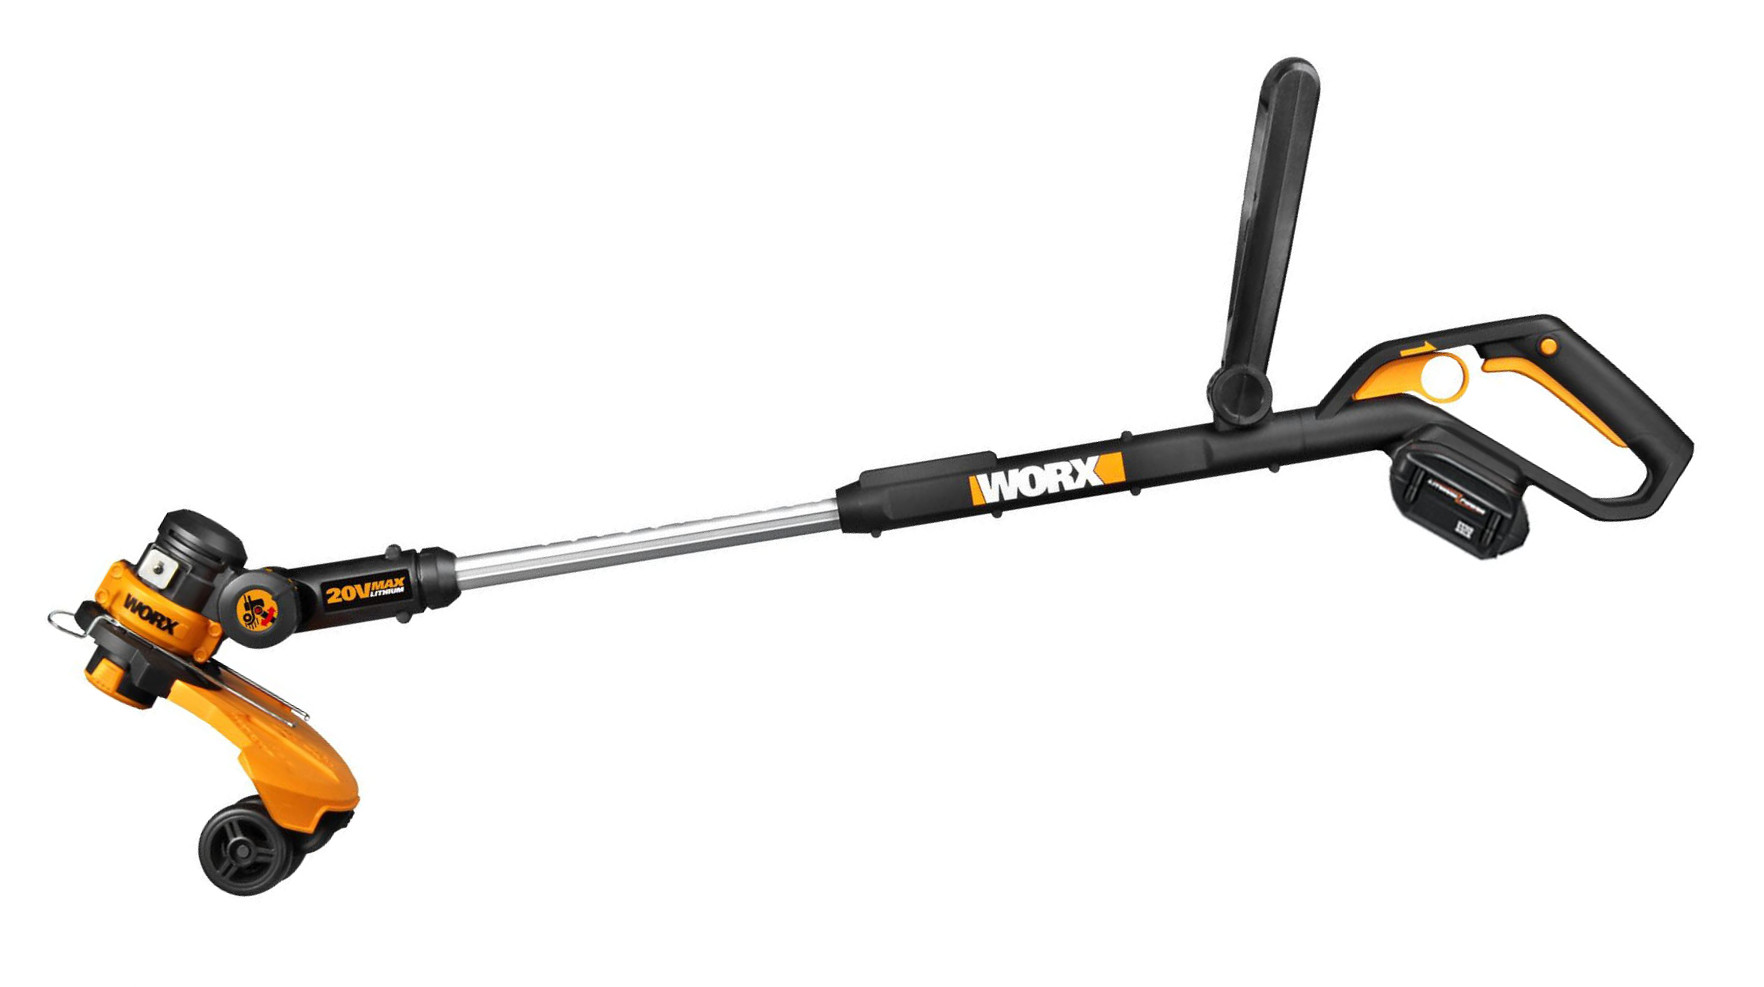 331843017956 also Honda Gx35 Engine Diagram further Worx Wg175 String Trimmer Review furthermore Overview together with Download Craftsman Gas Powered Trimmer Edger Manual 6735040. on gas powered weed eater